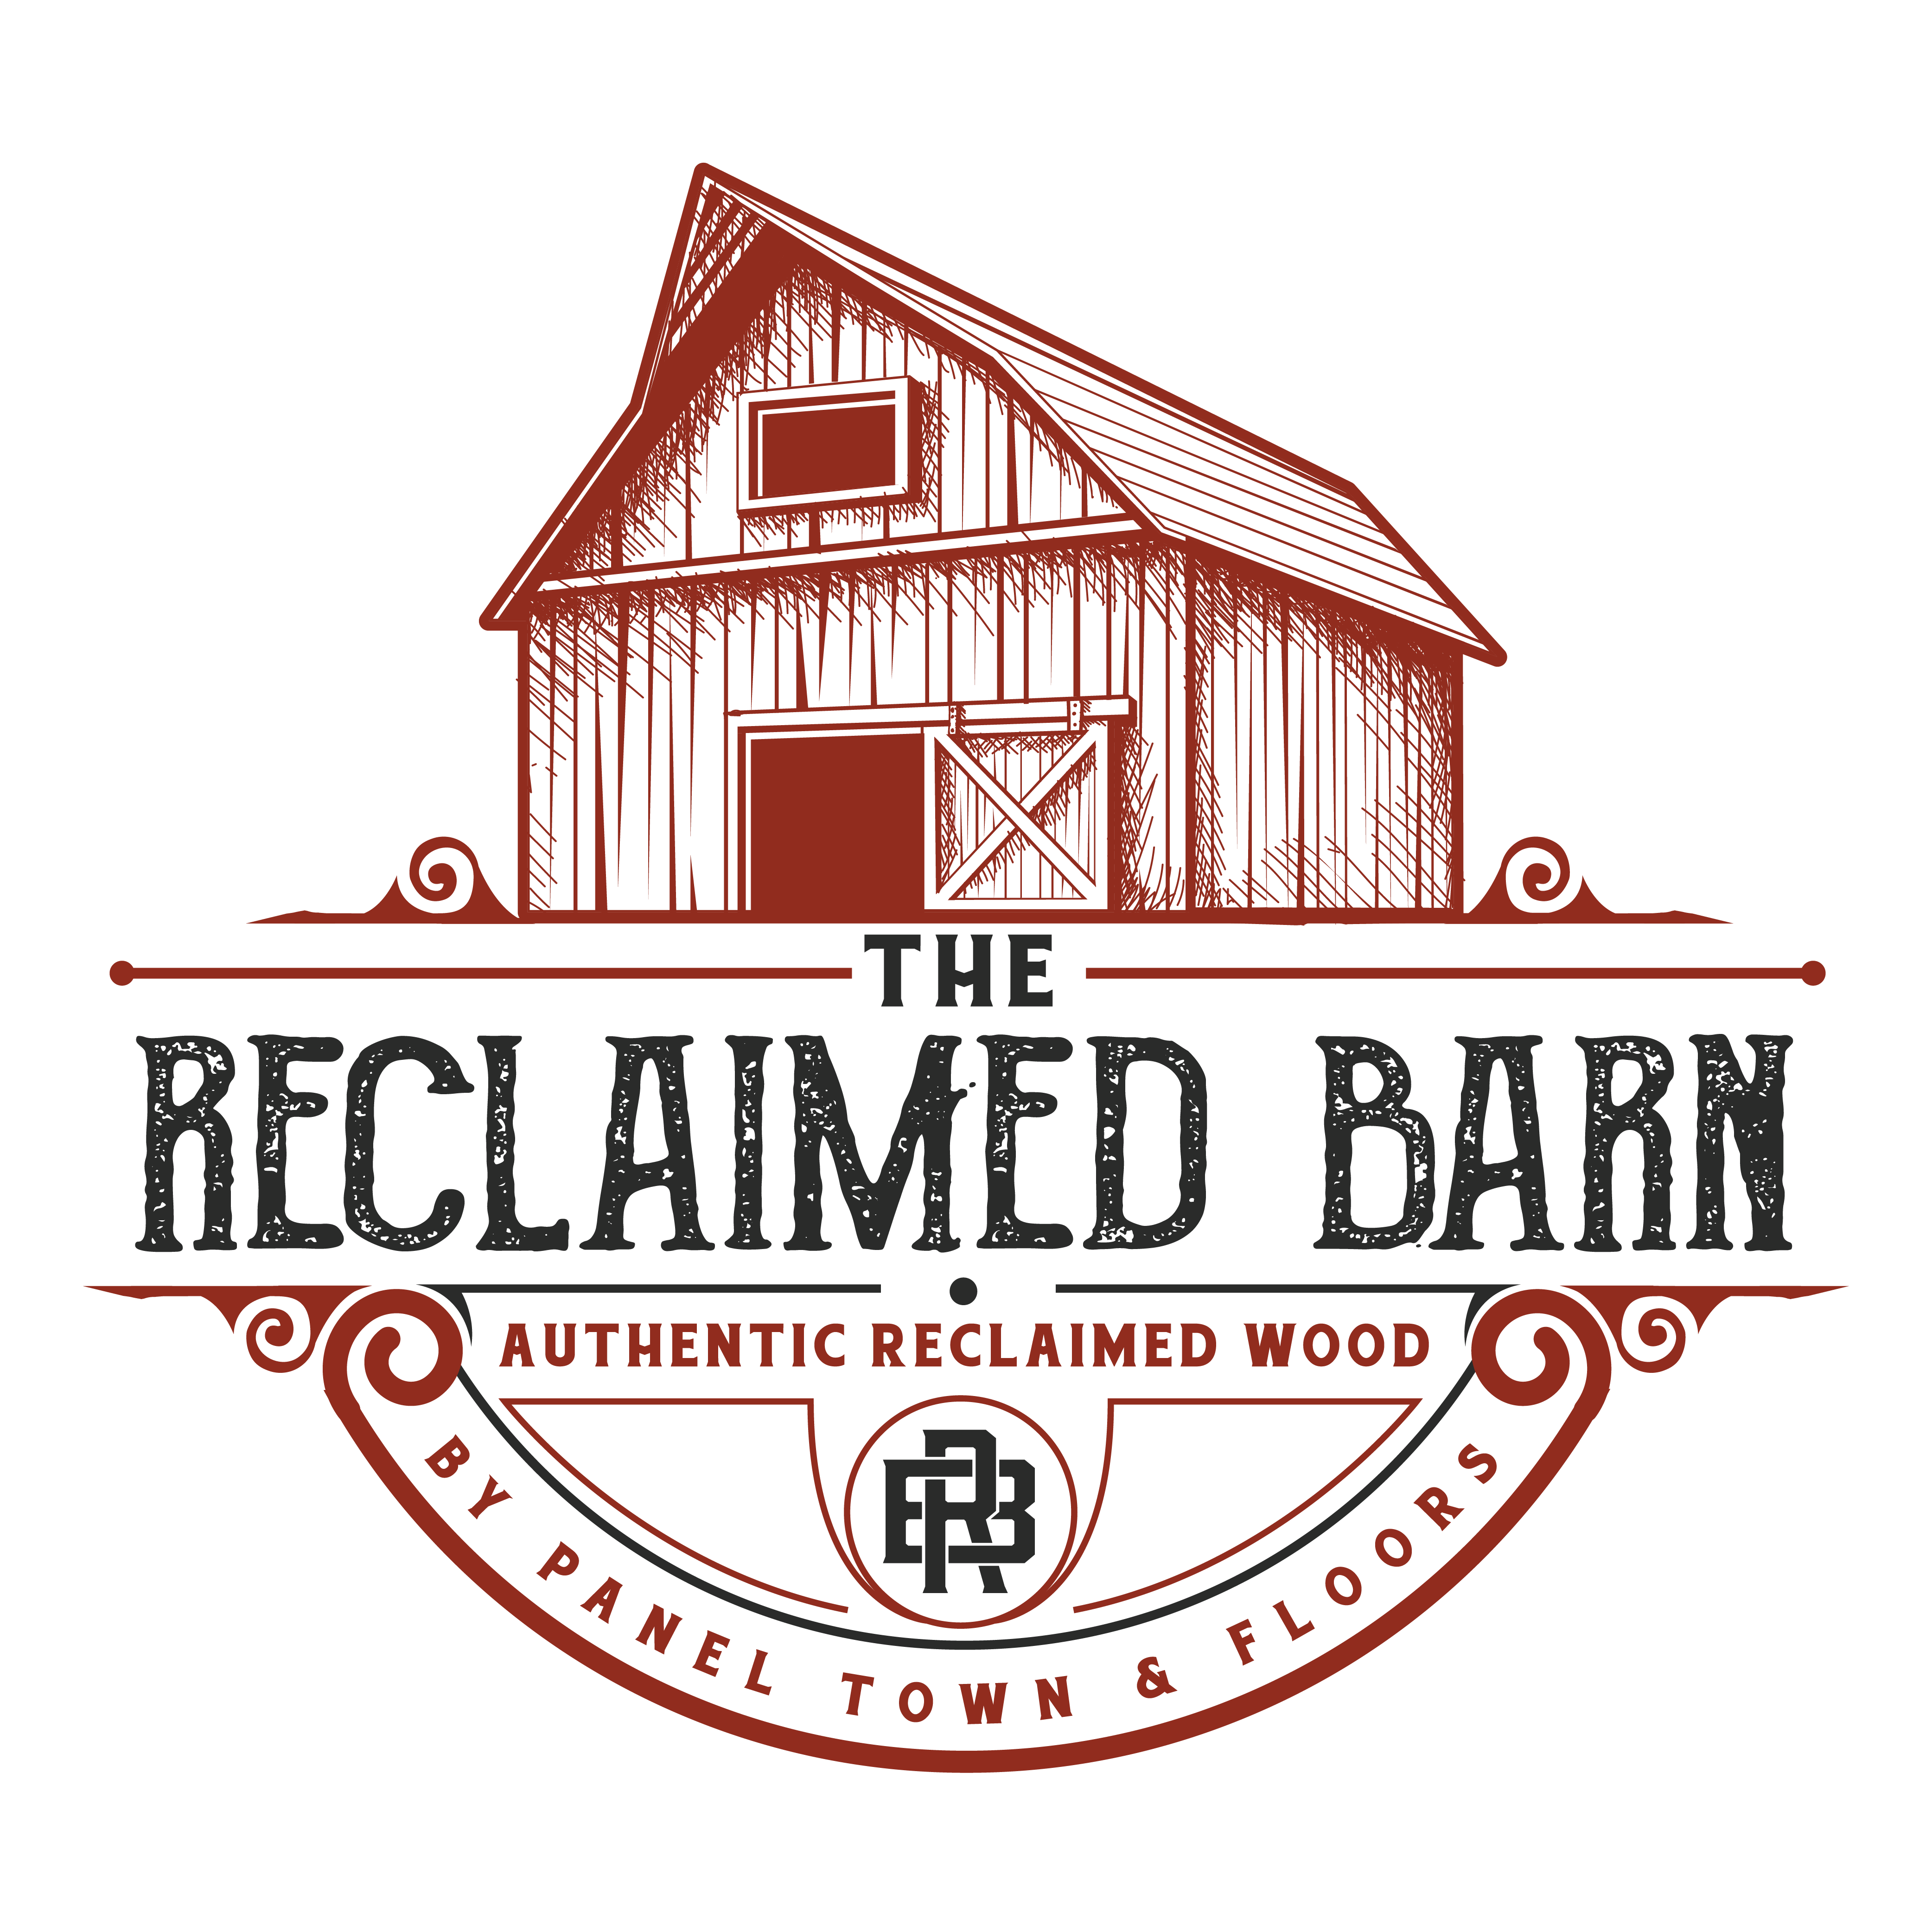 Design Vintage Looking Logo For New Reclaimed Wood Company